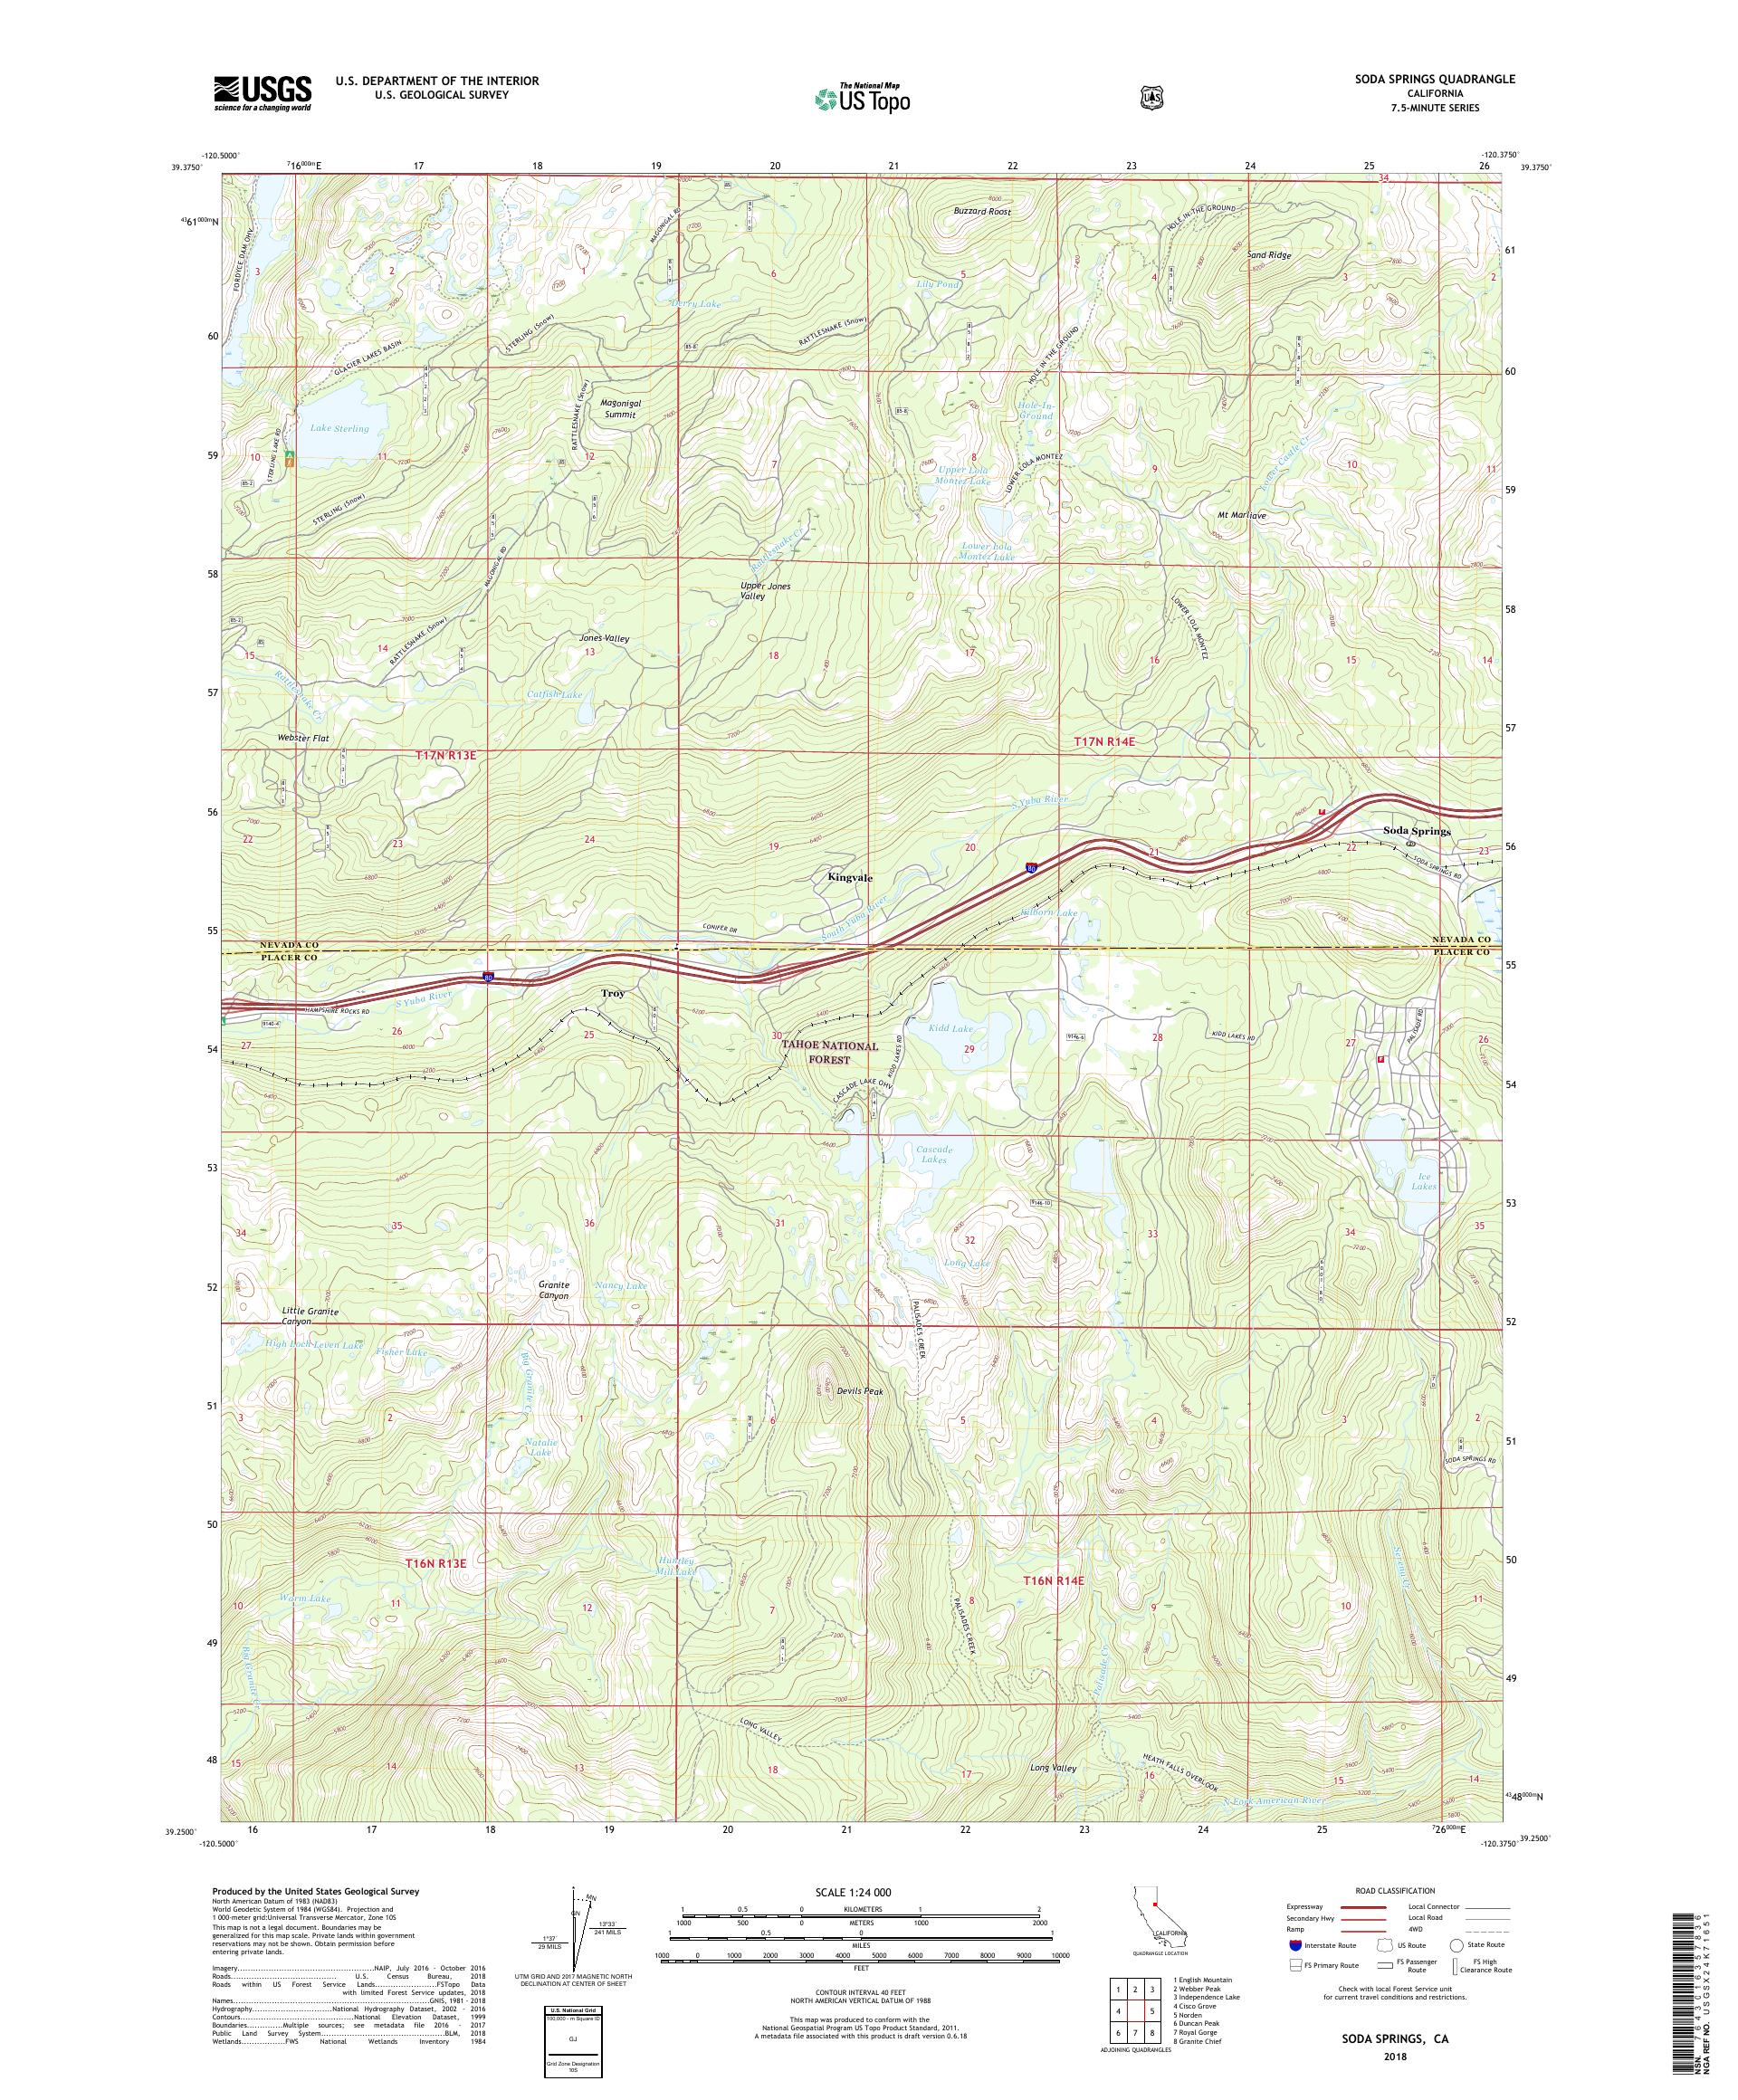 Mytopo Soda Springs California Usgs Quad Topo Map - Soda-map-of-the-us